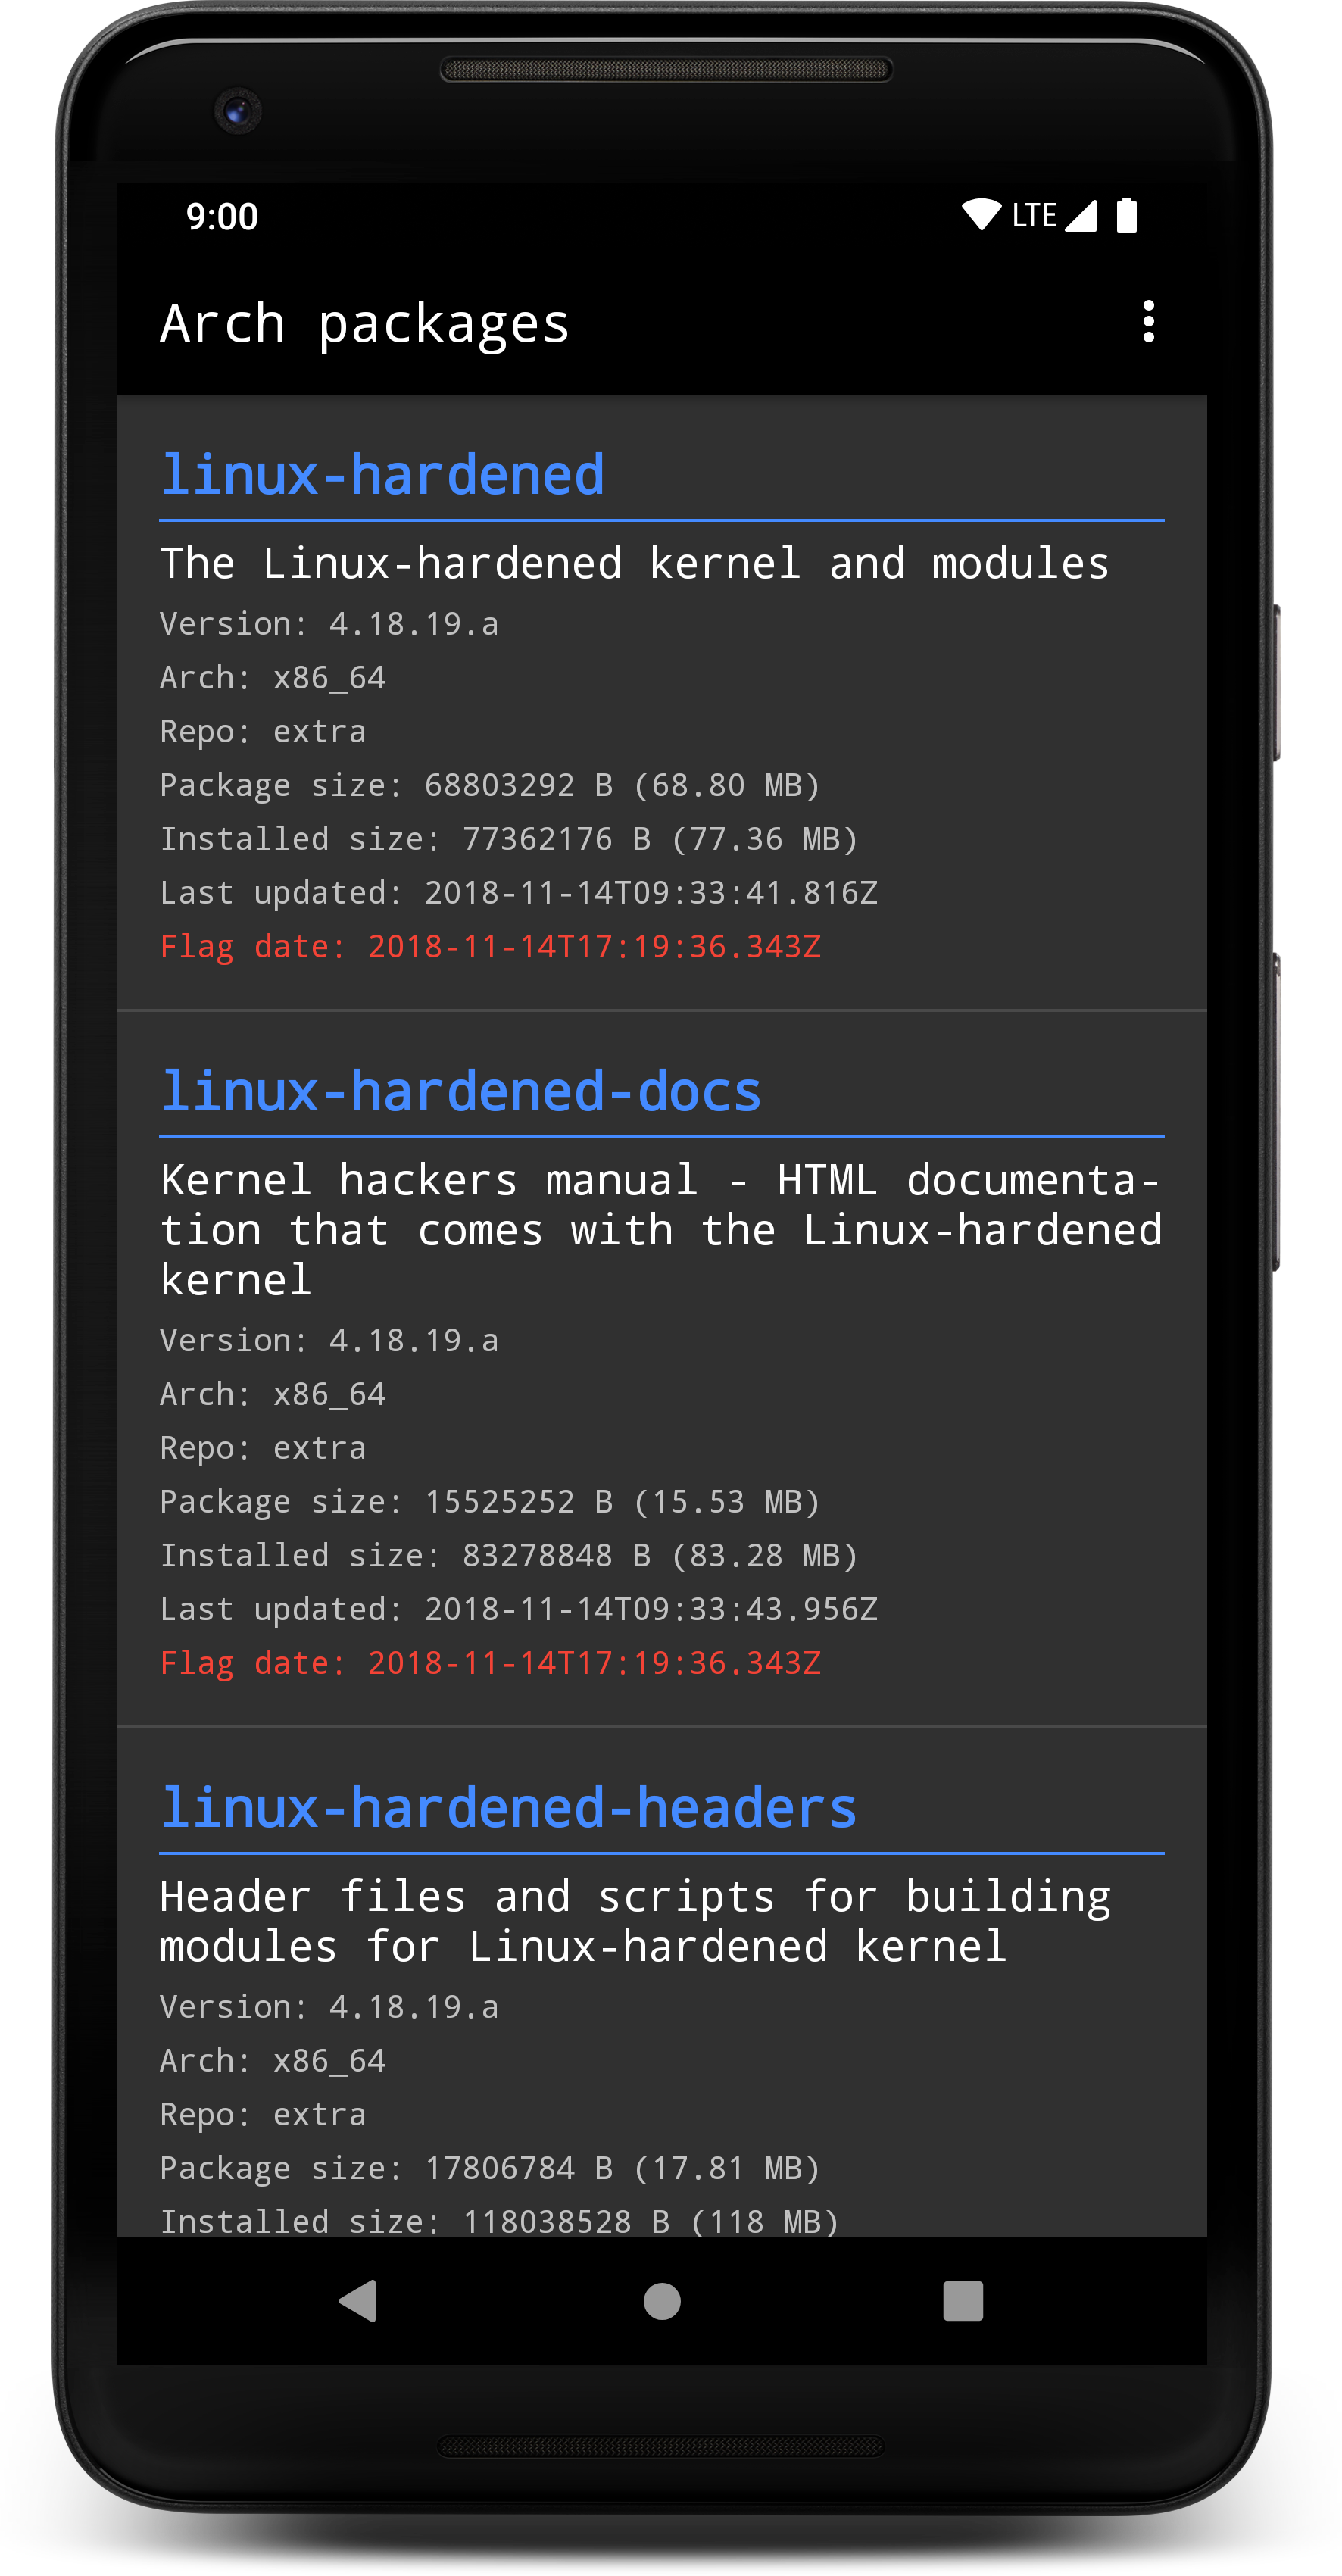 Arch packages | F-Droid - Free and Open Source Android App Repository